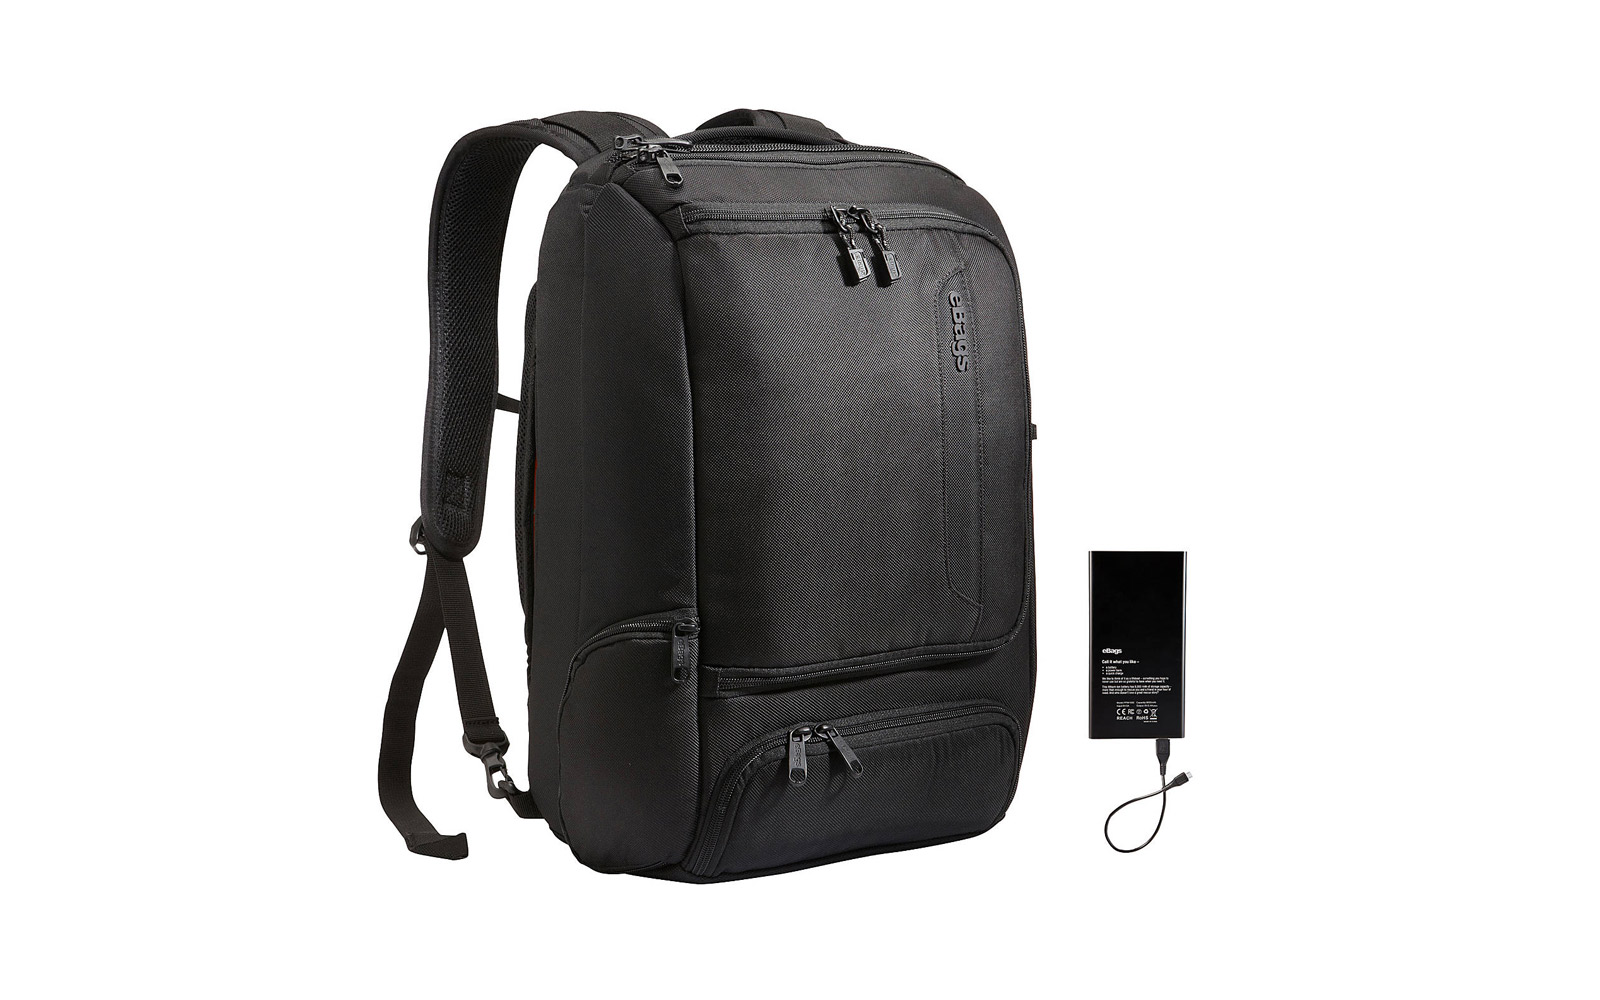 The Best Laptop Backpacks For Travel According To Frequent